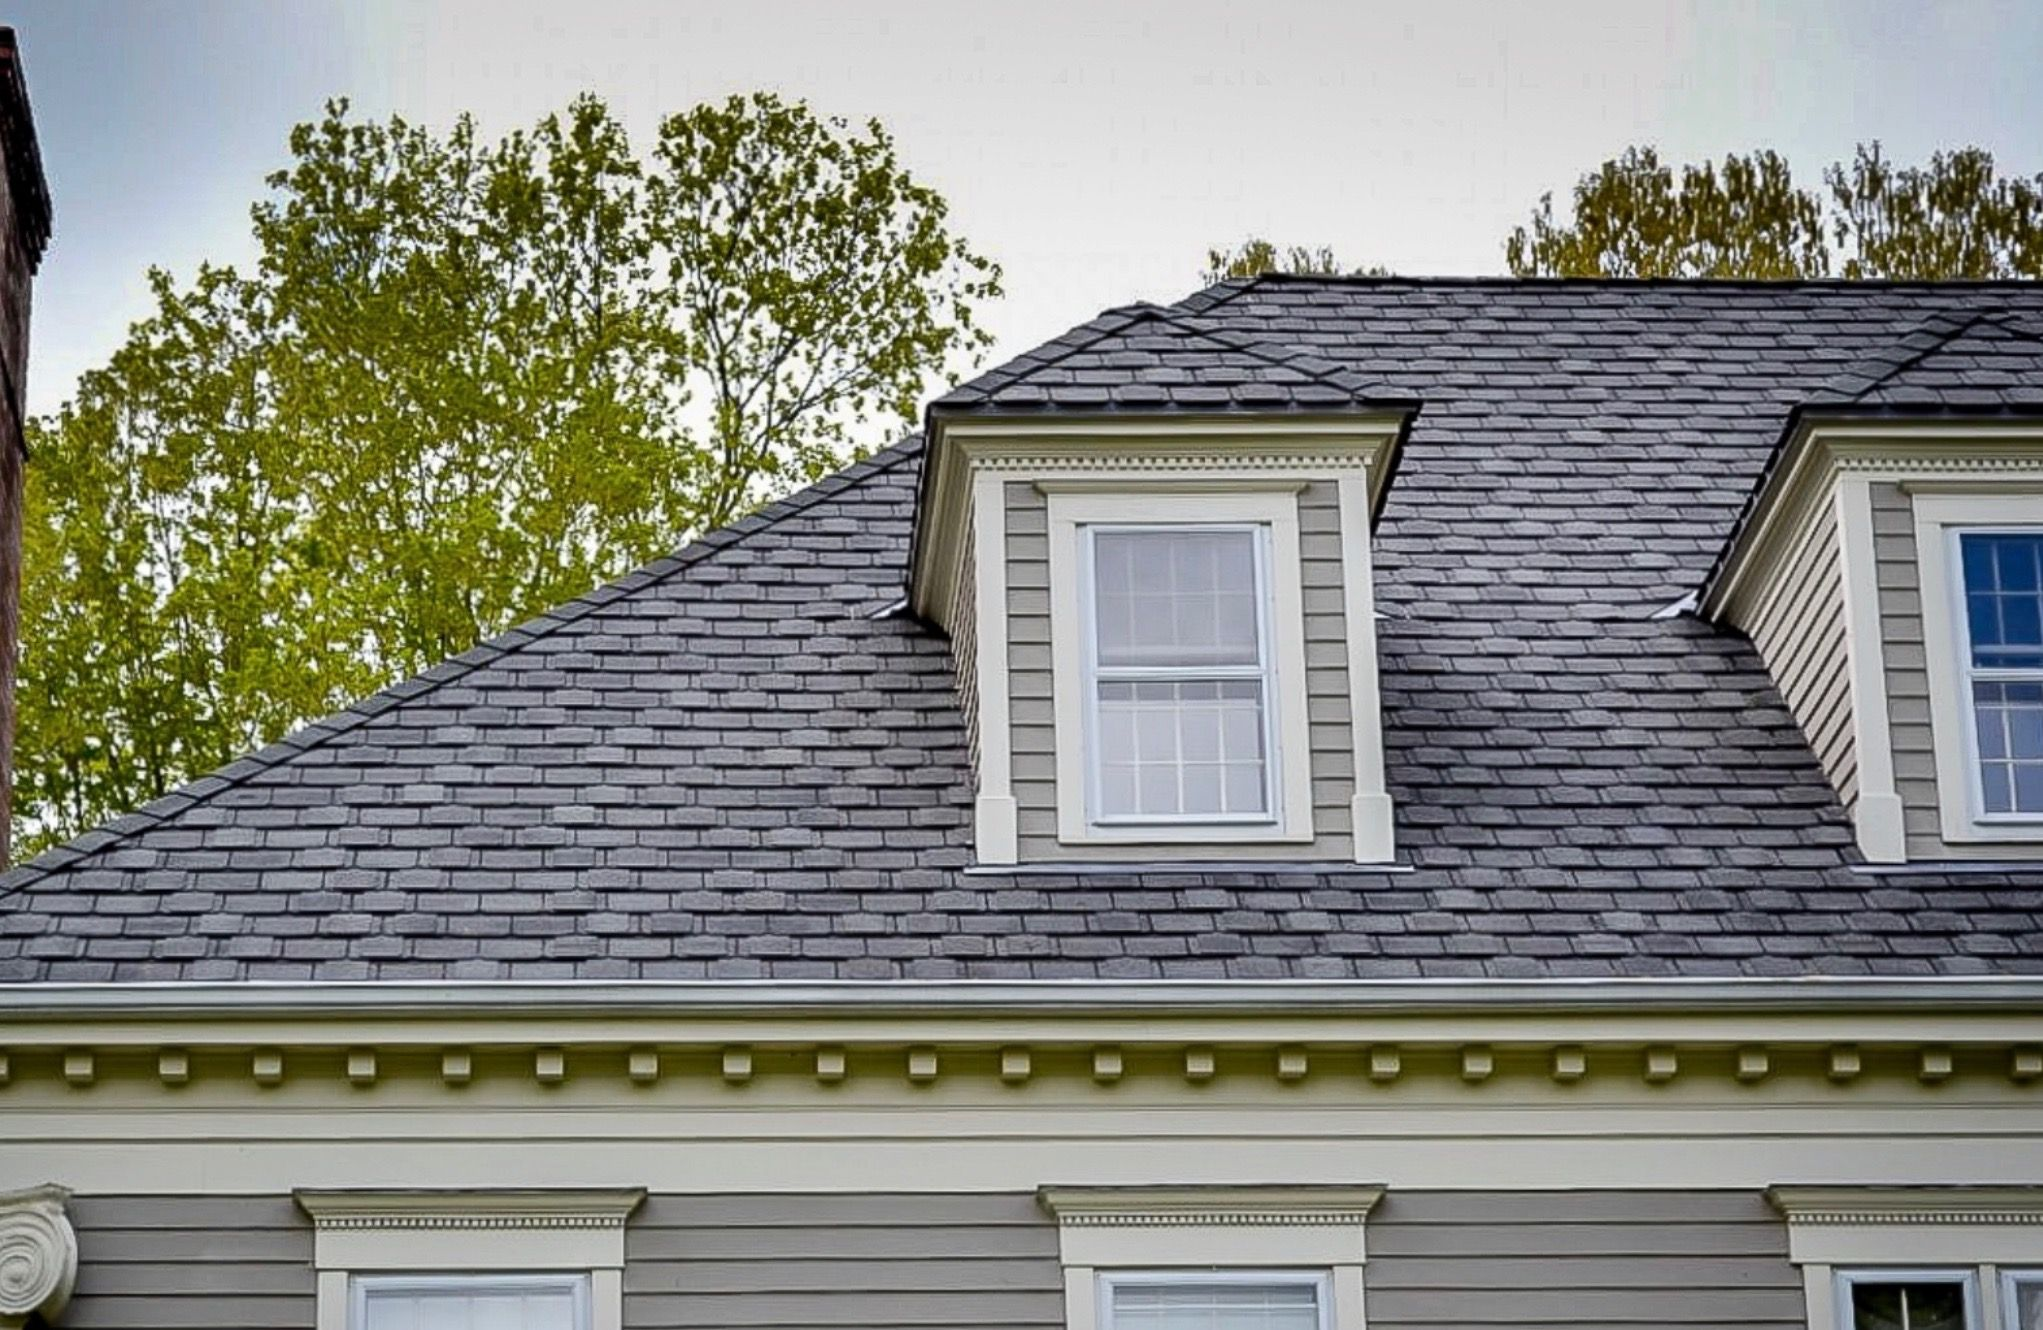 Gaf Camelot Ii Roofing Shingles Available At Home Depot A Beautiful And Affordable Alternative To A Boring Roof Roof Shingles Building Materials Roofing